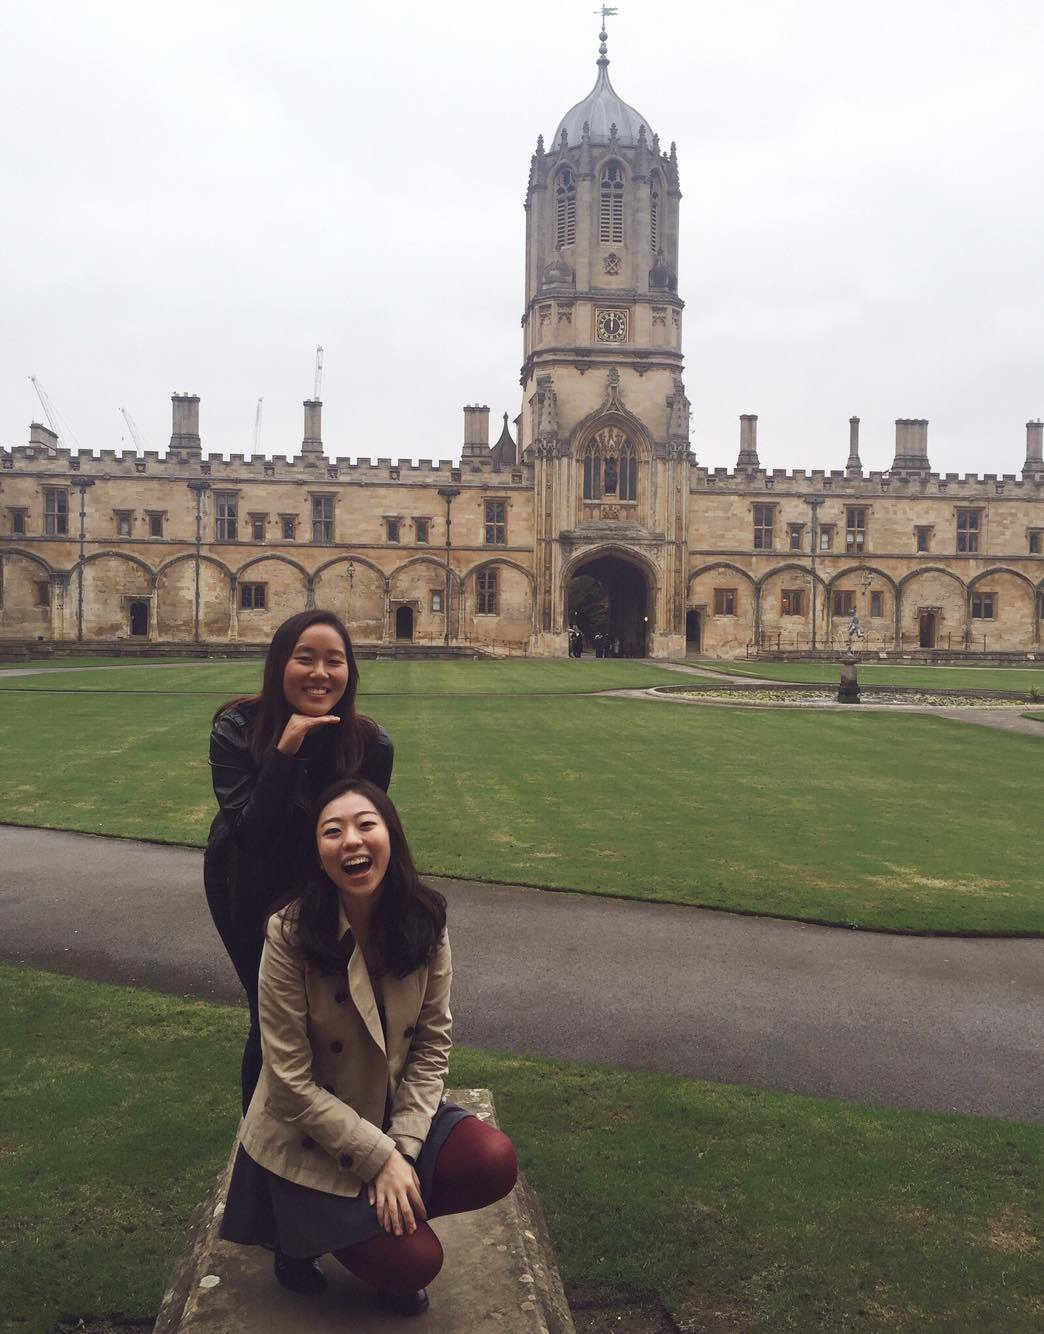 Jilliann in front of Christ Church at Oxford.